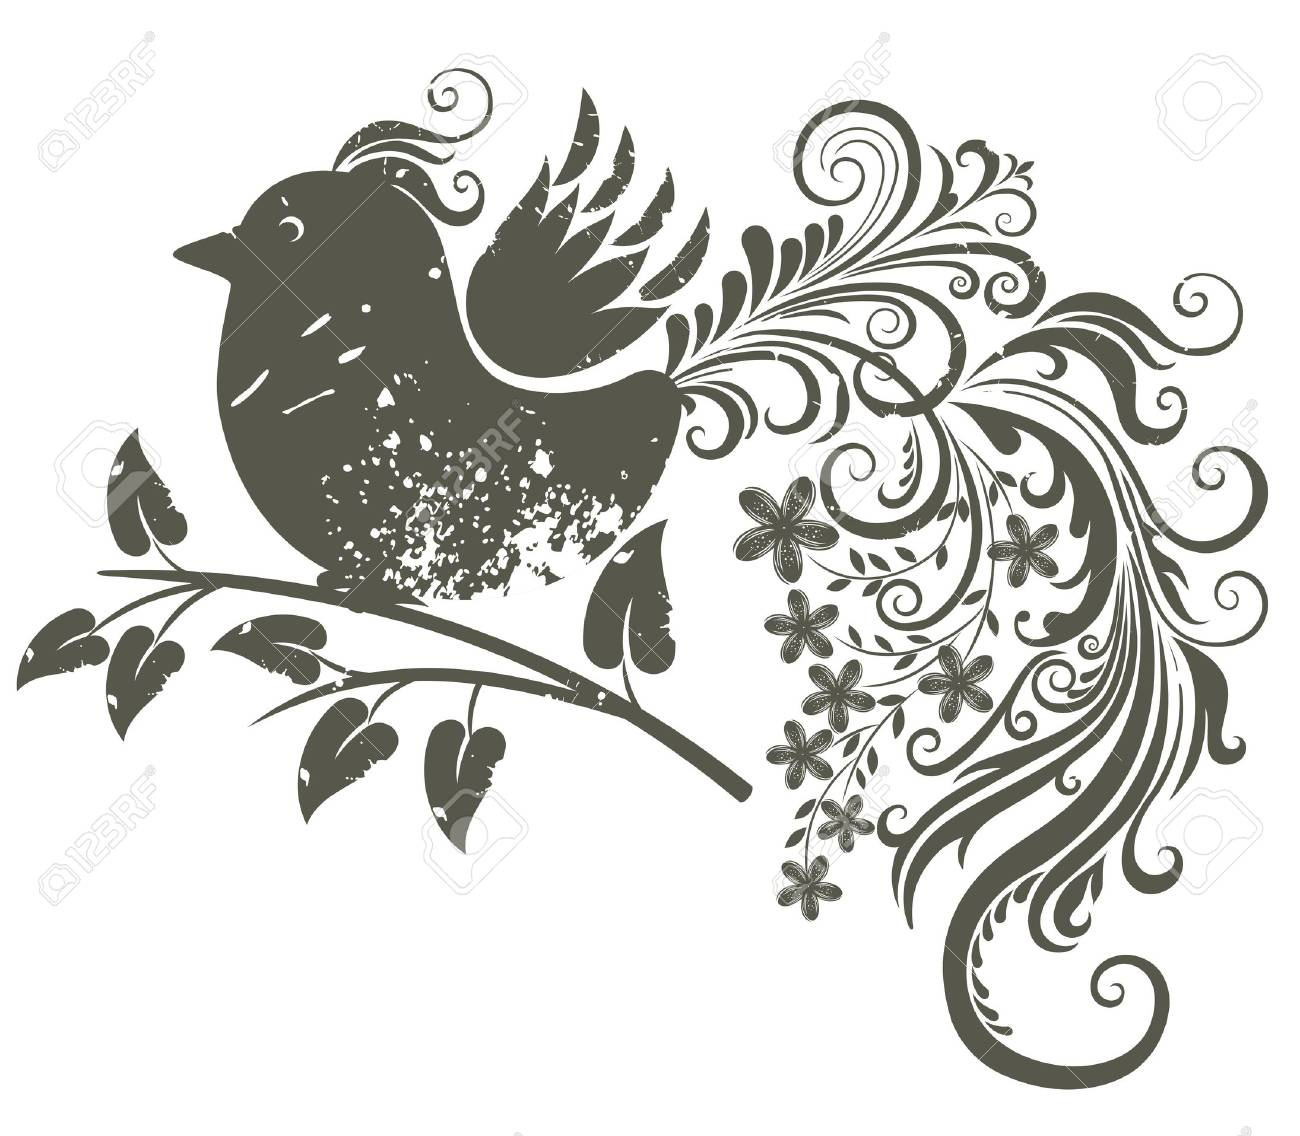 Bird. Stock Vector - 9718193